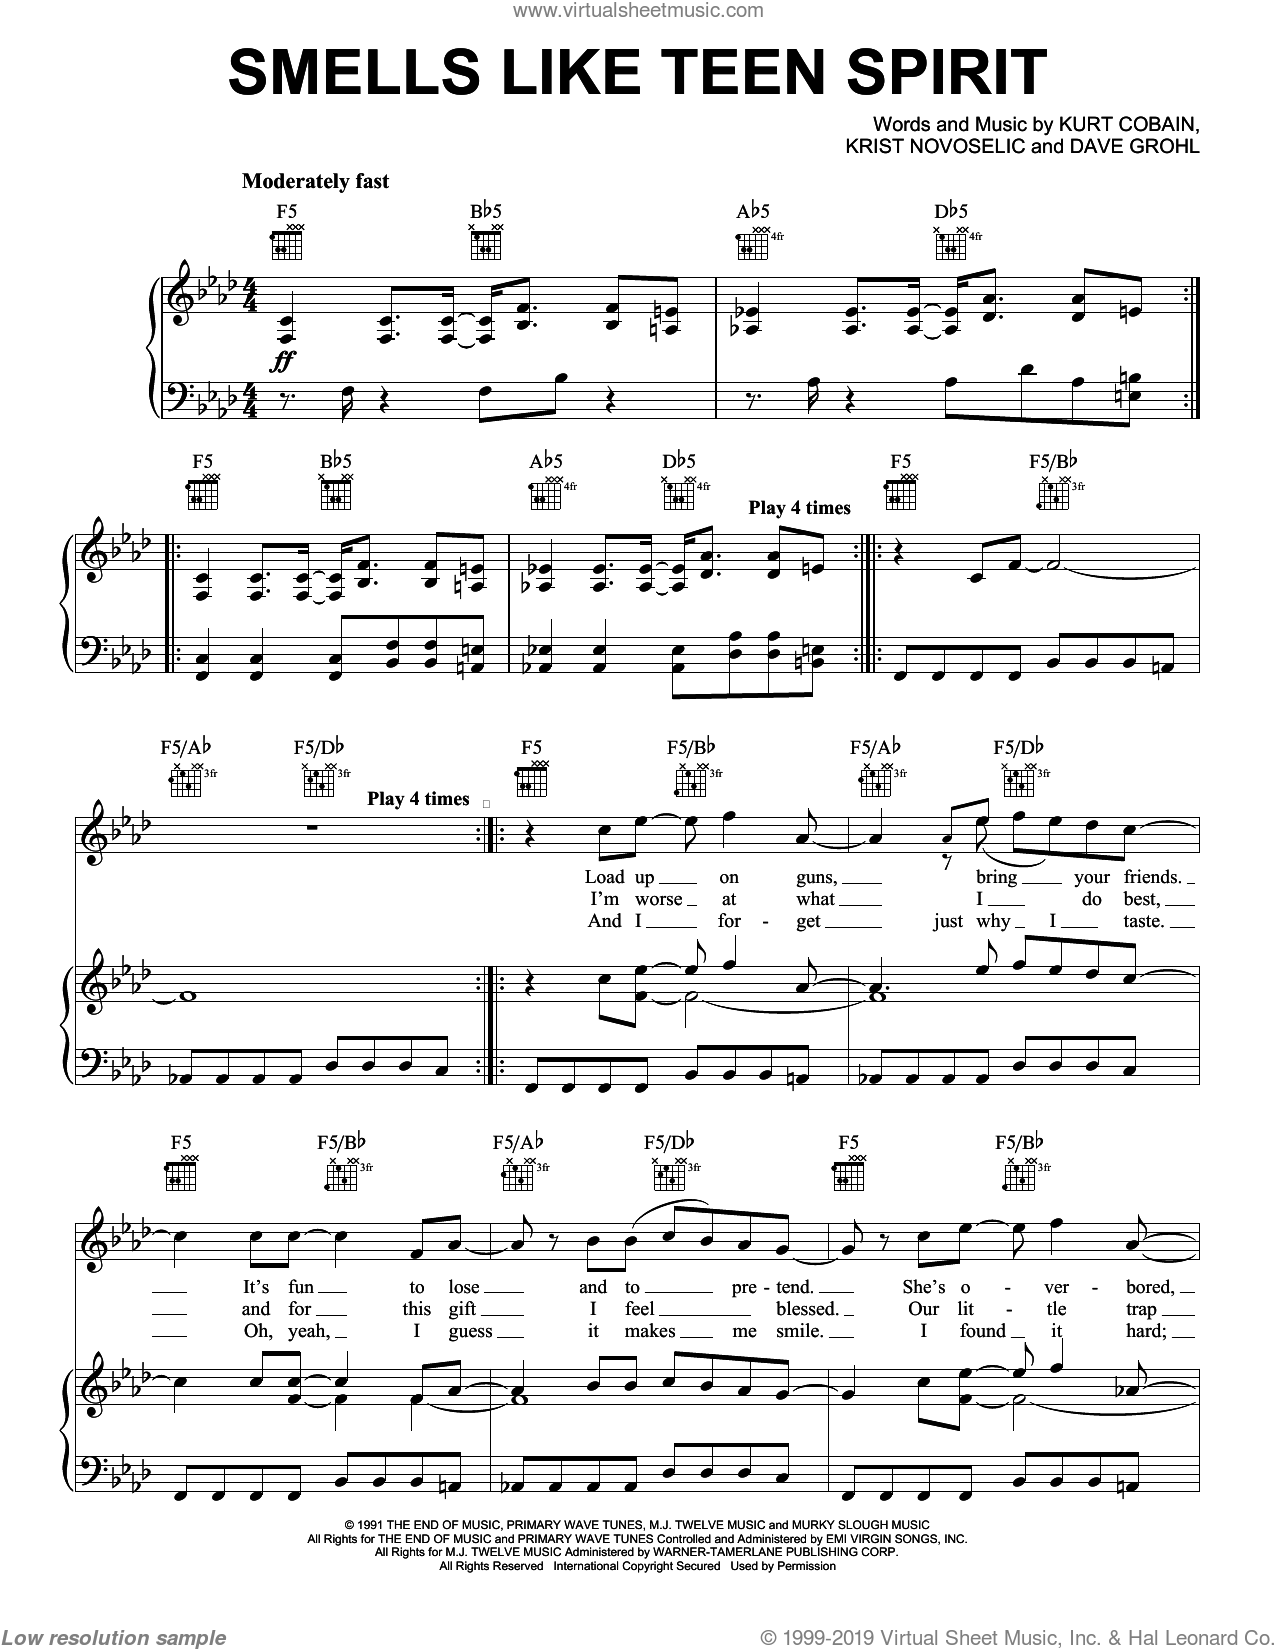 Smells Like Teen Spirit sheet music for voice, piano or guitar by Nirvana, Chris Novoselic, Dave Grohl and Kurt Cobain, intermediate skill level